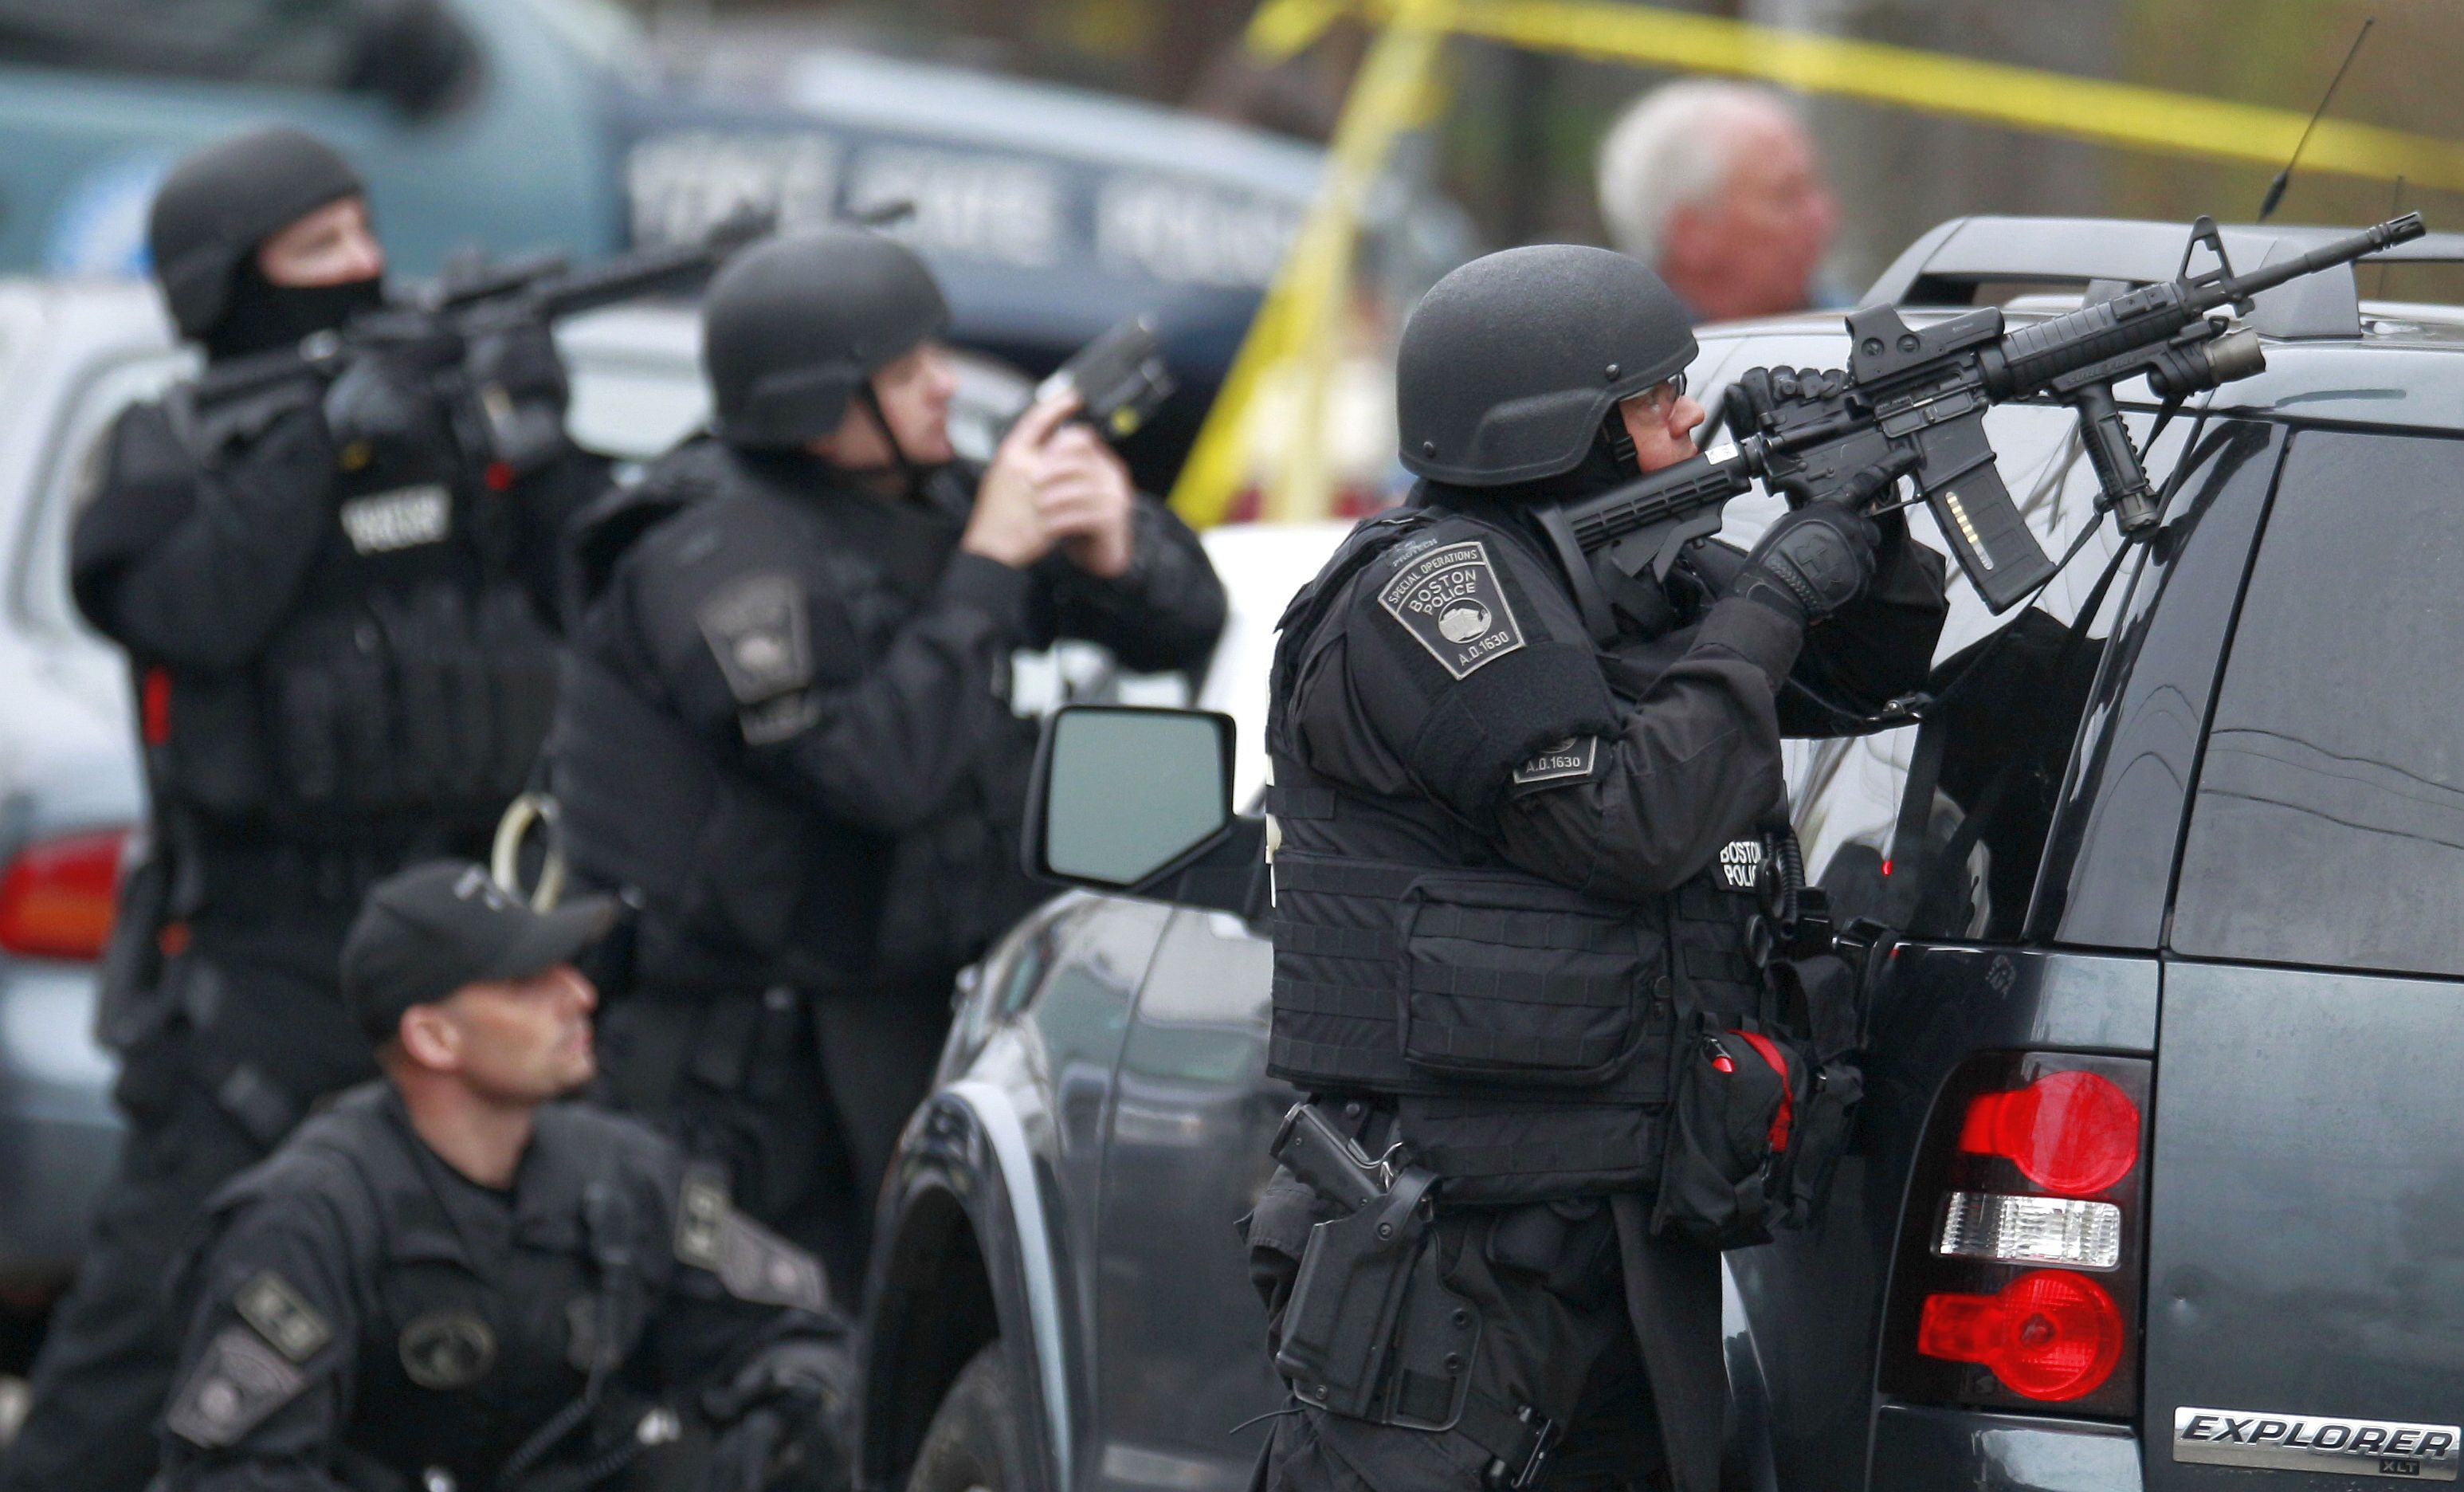 The hunt is over!' Police have Boston bombing suspect in